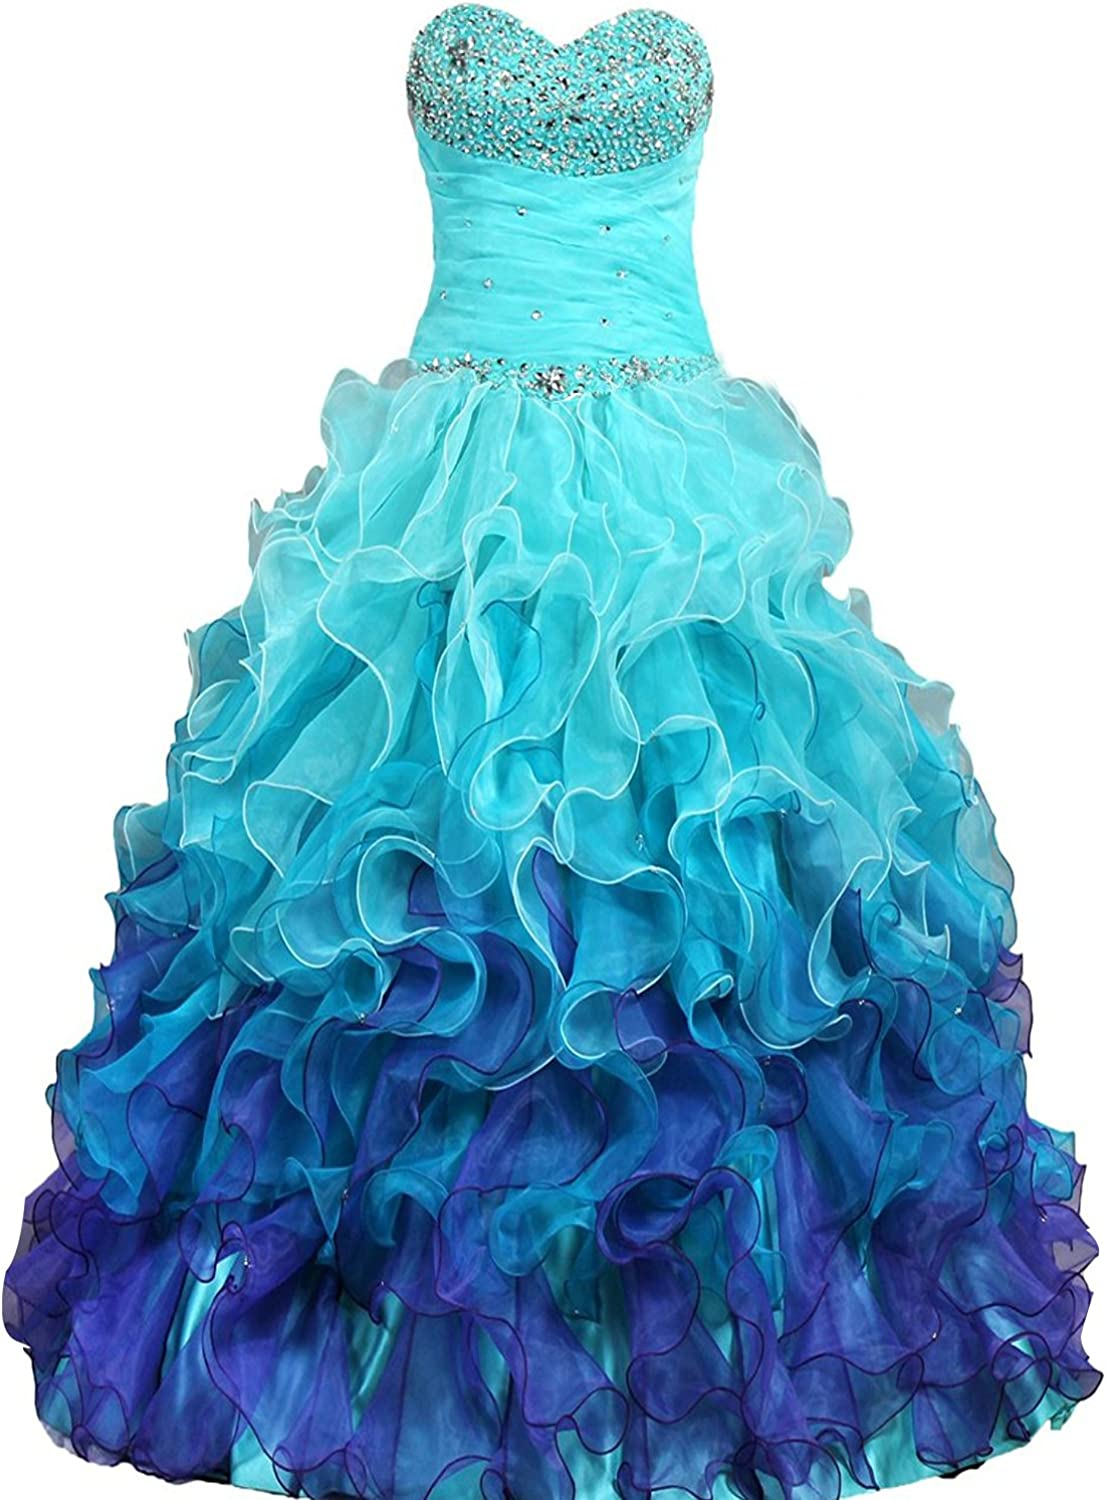 DianSheng Beaded Strapless Rainbow Quinceanera Dresses Ruffle Prom Gowns CK64